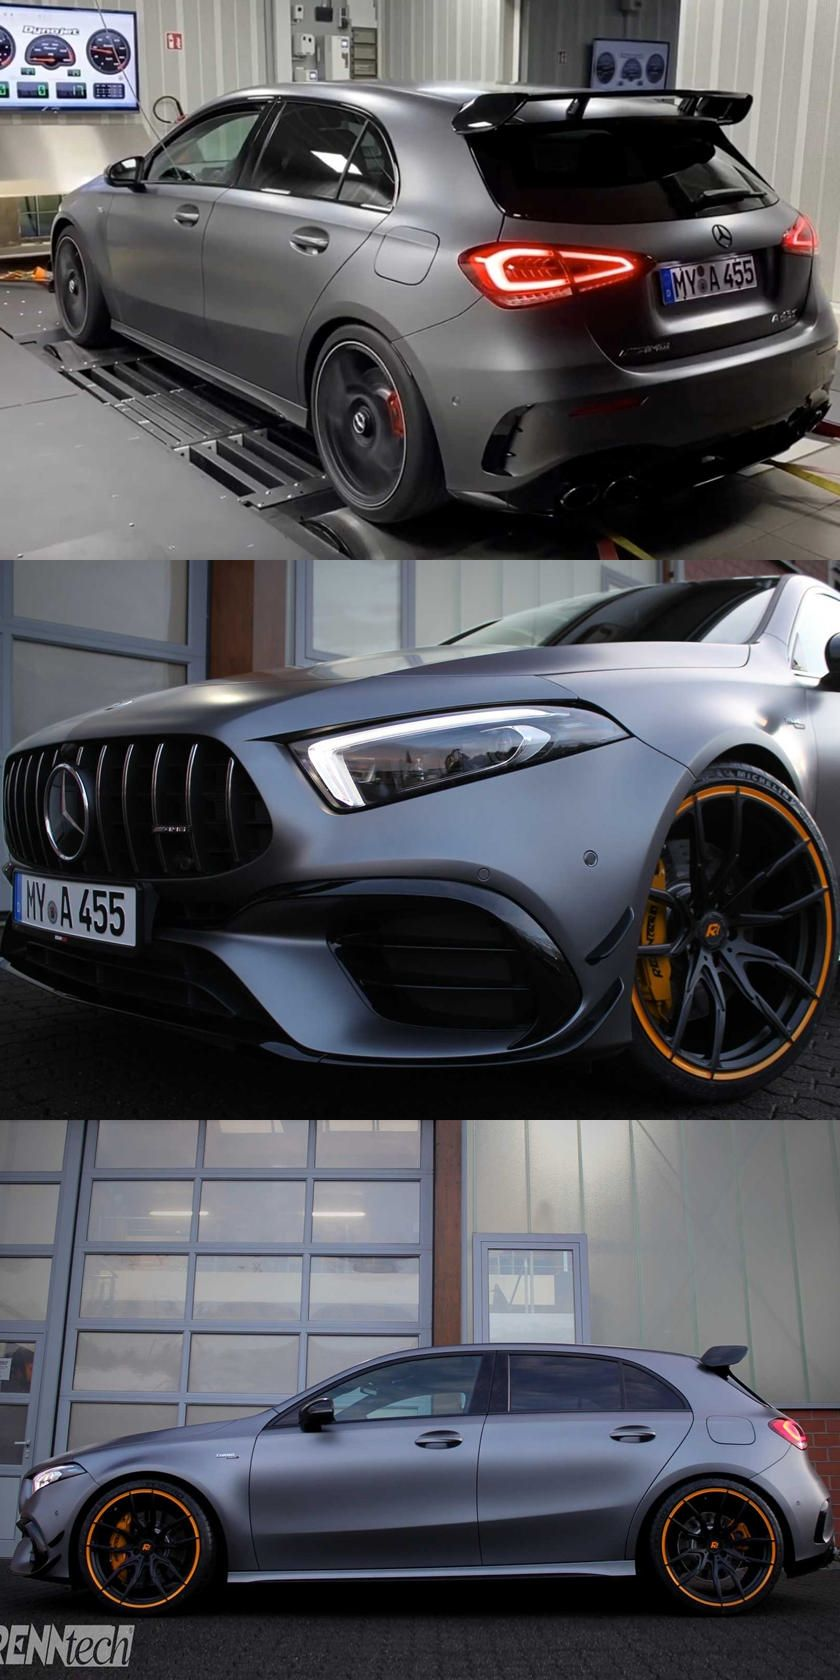 Mercedes Amg A45 S Transformed Into 600 Hp Monster The Mercedes Amg S Hot Hatch Just Got Even More Extreme In 2020 Mercedes Amg Mercedes Car Bmw Sports Car